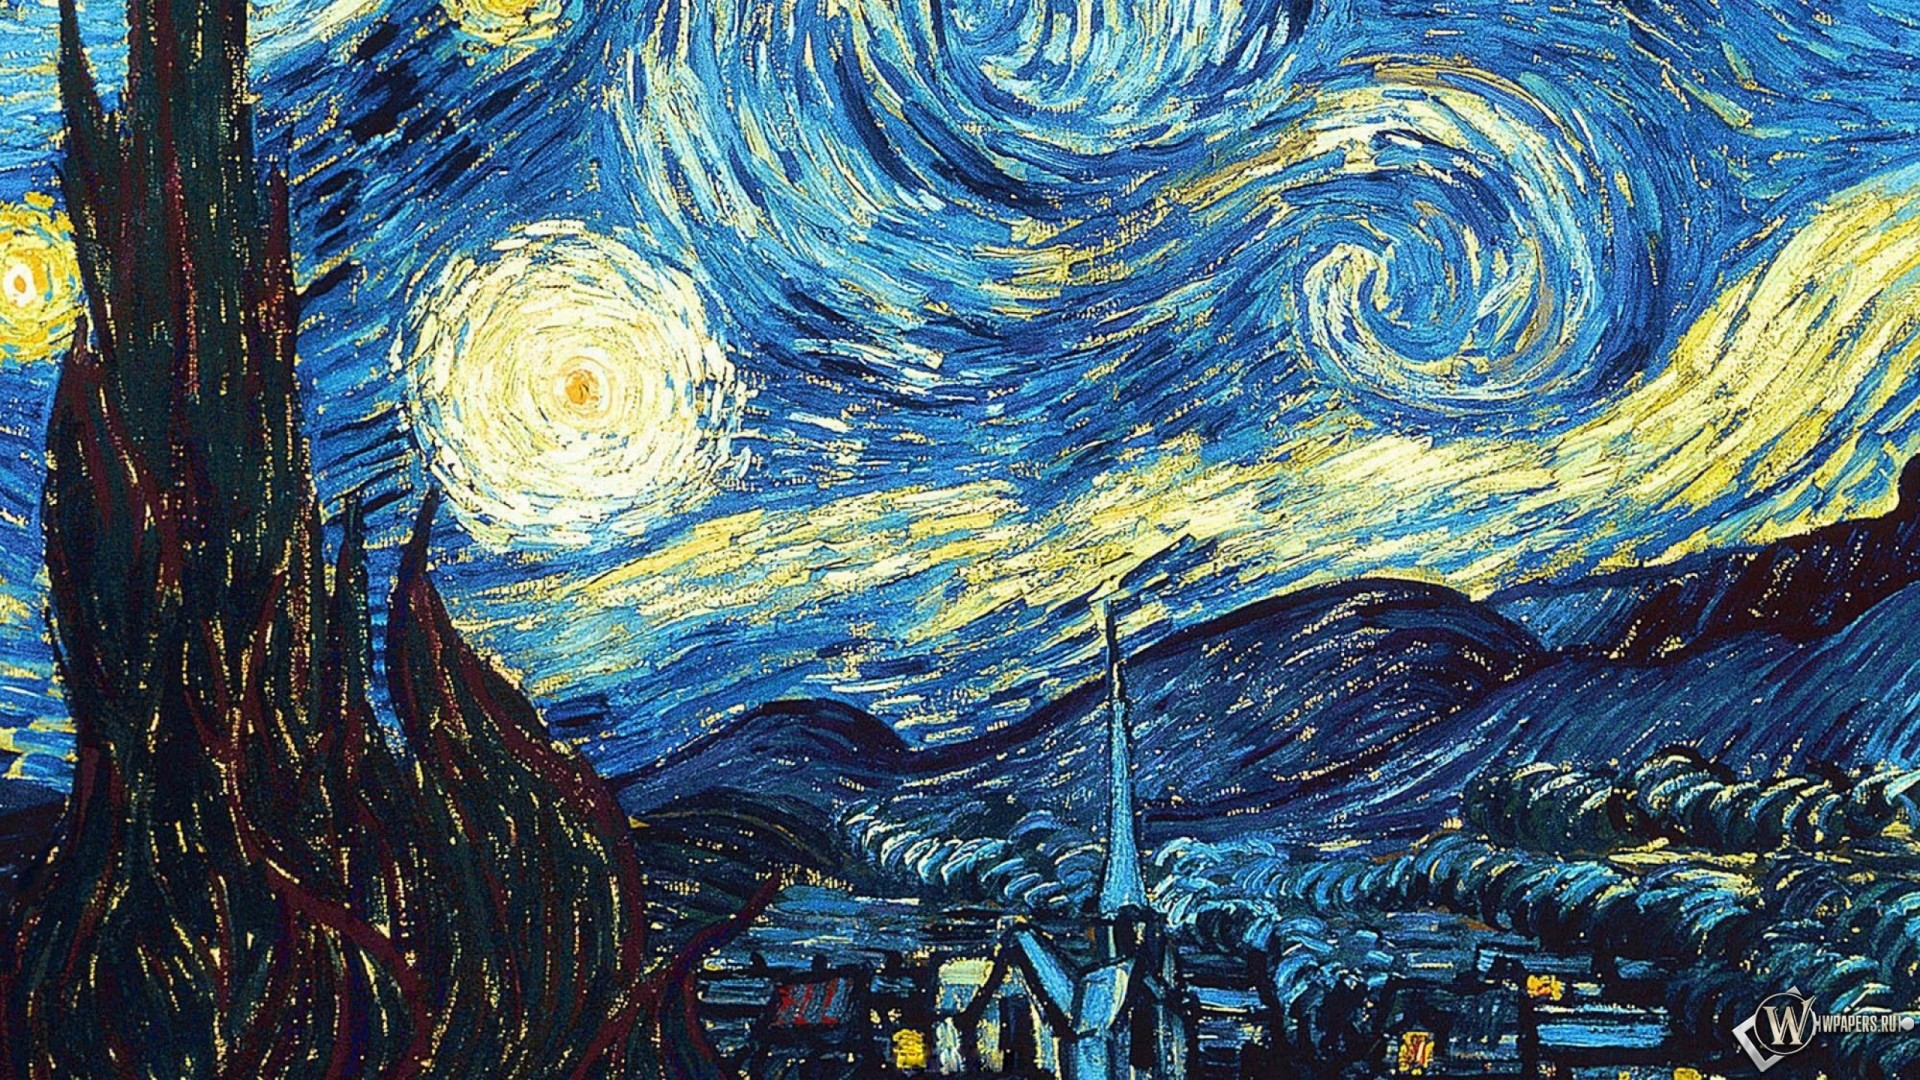 1920x1080  Wallpaper vincent van gogh, the starry night, oil, canvas